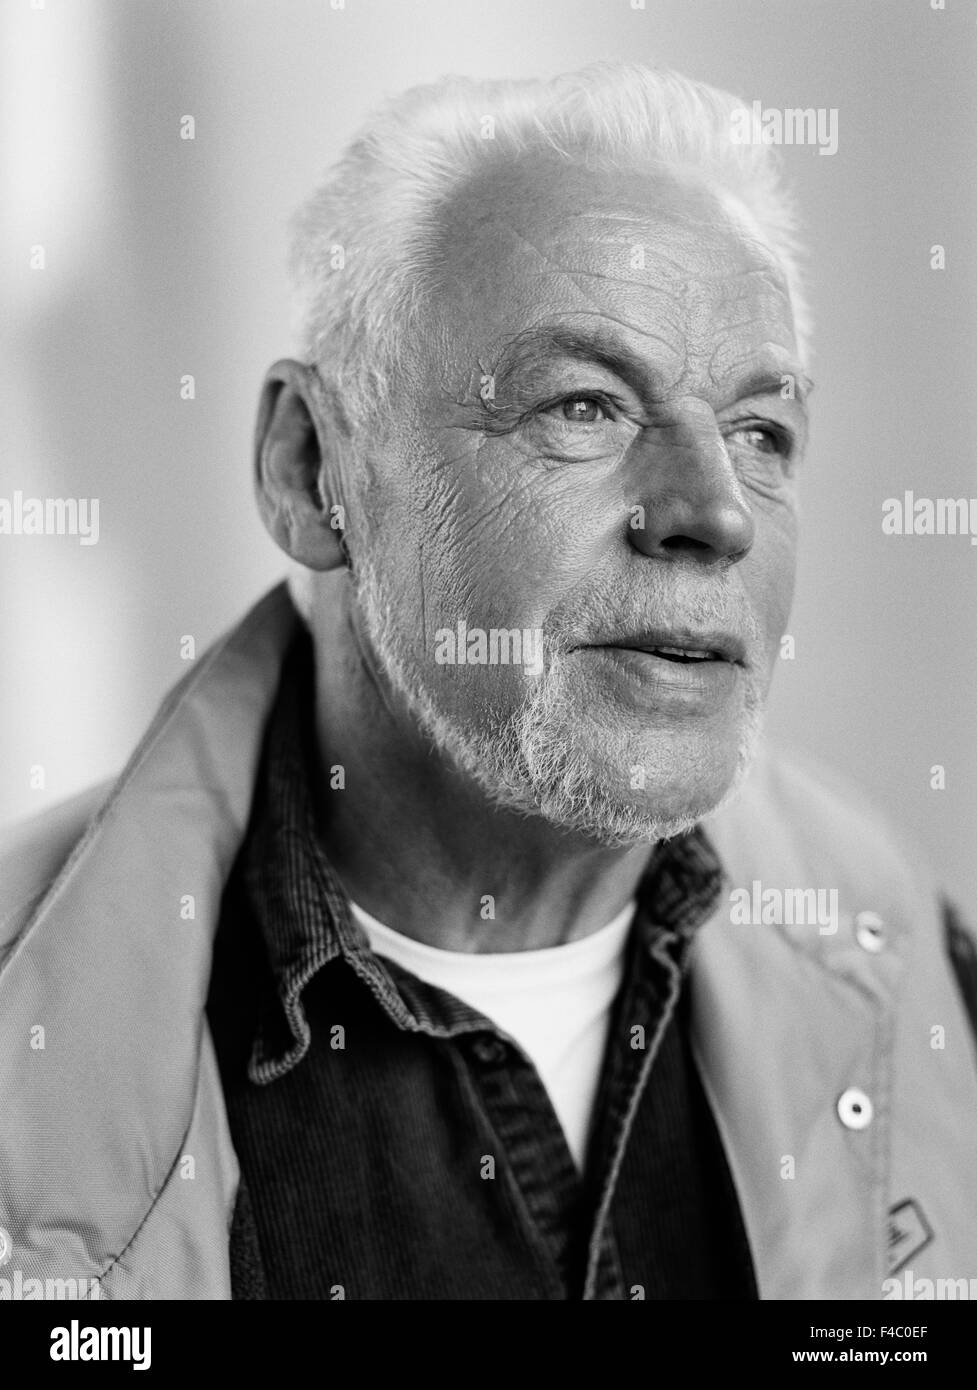 Old man in shirt and vest. - Stock Image